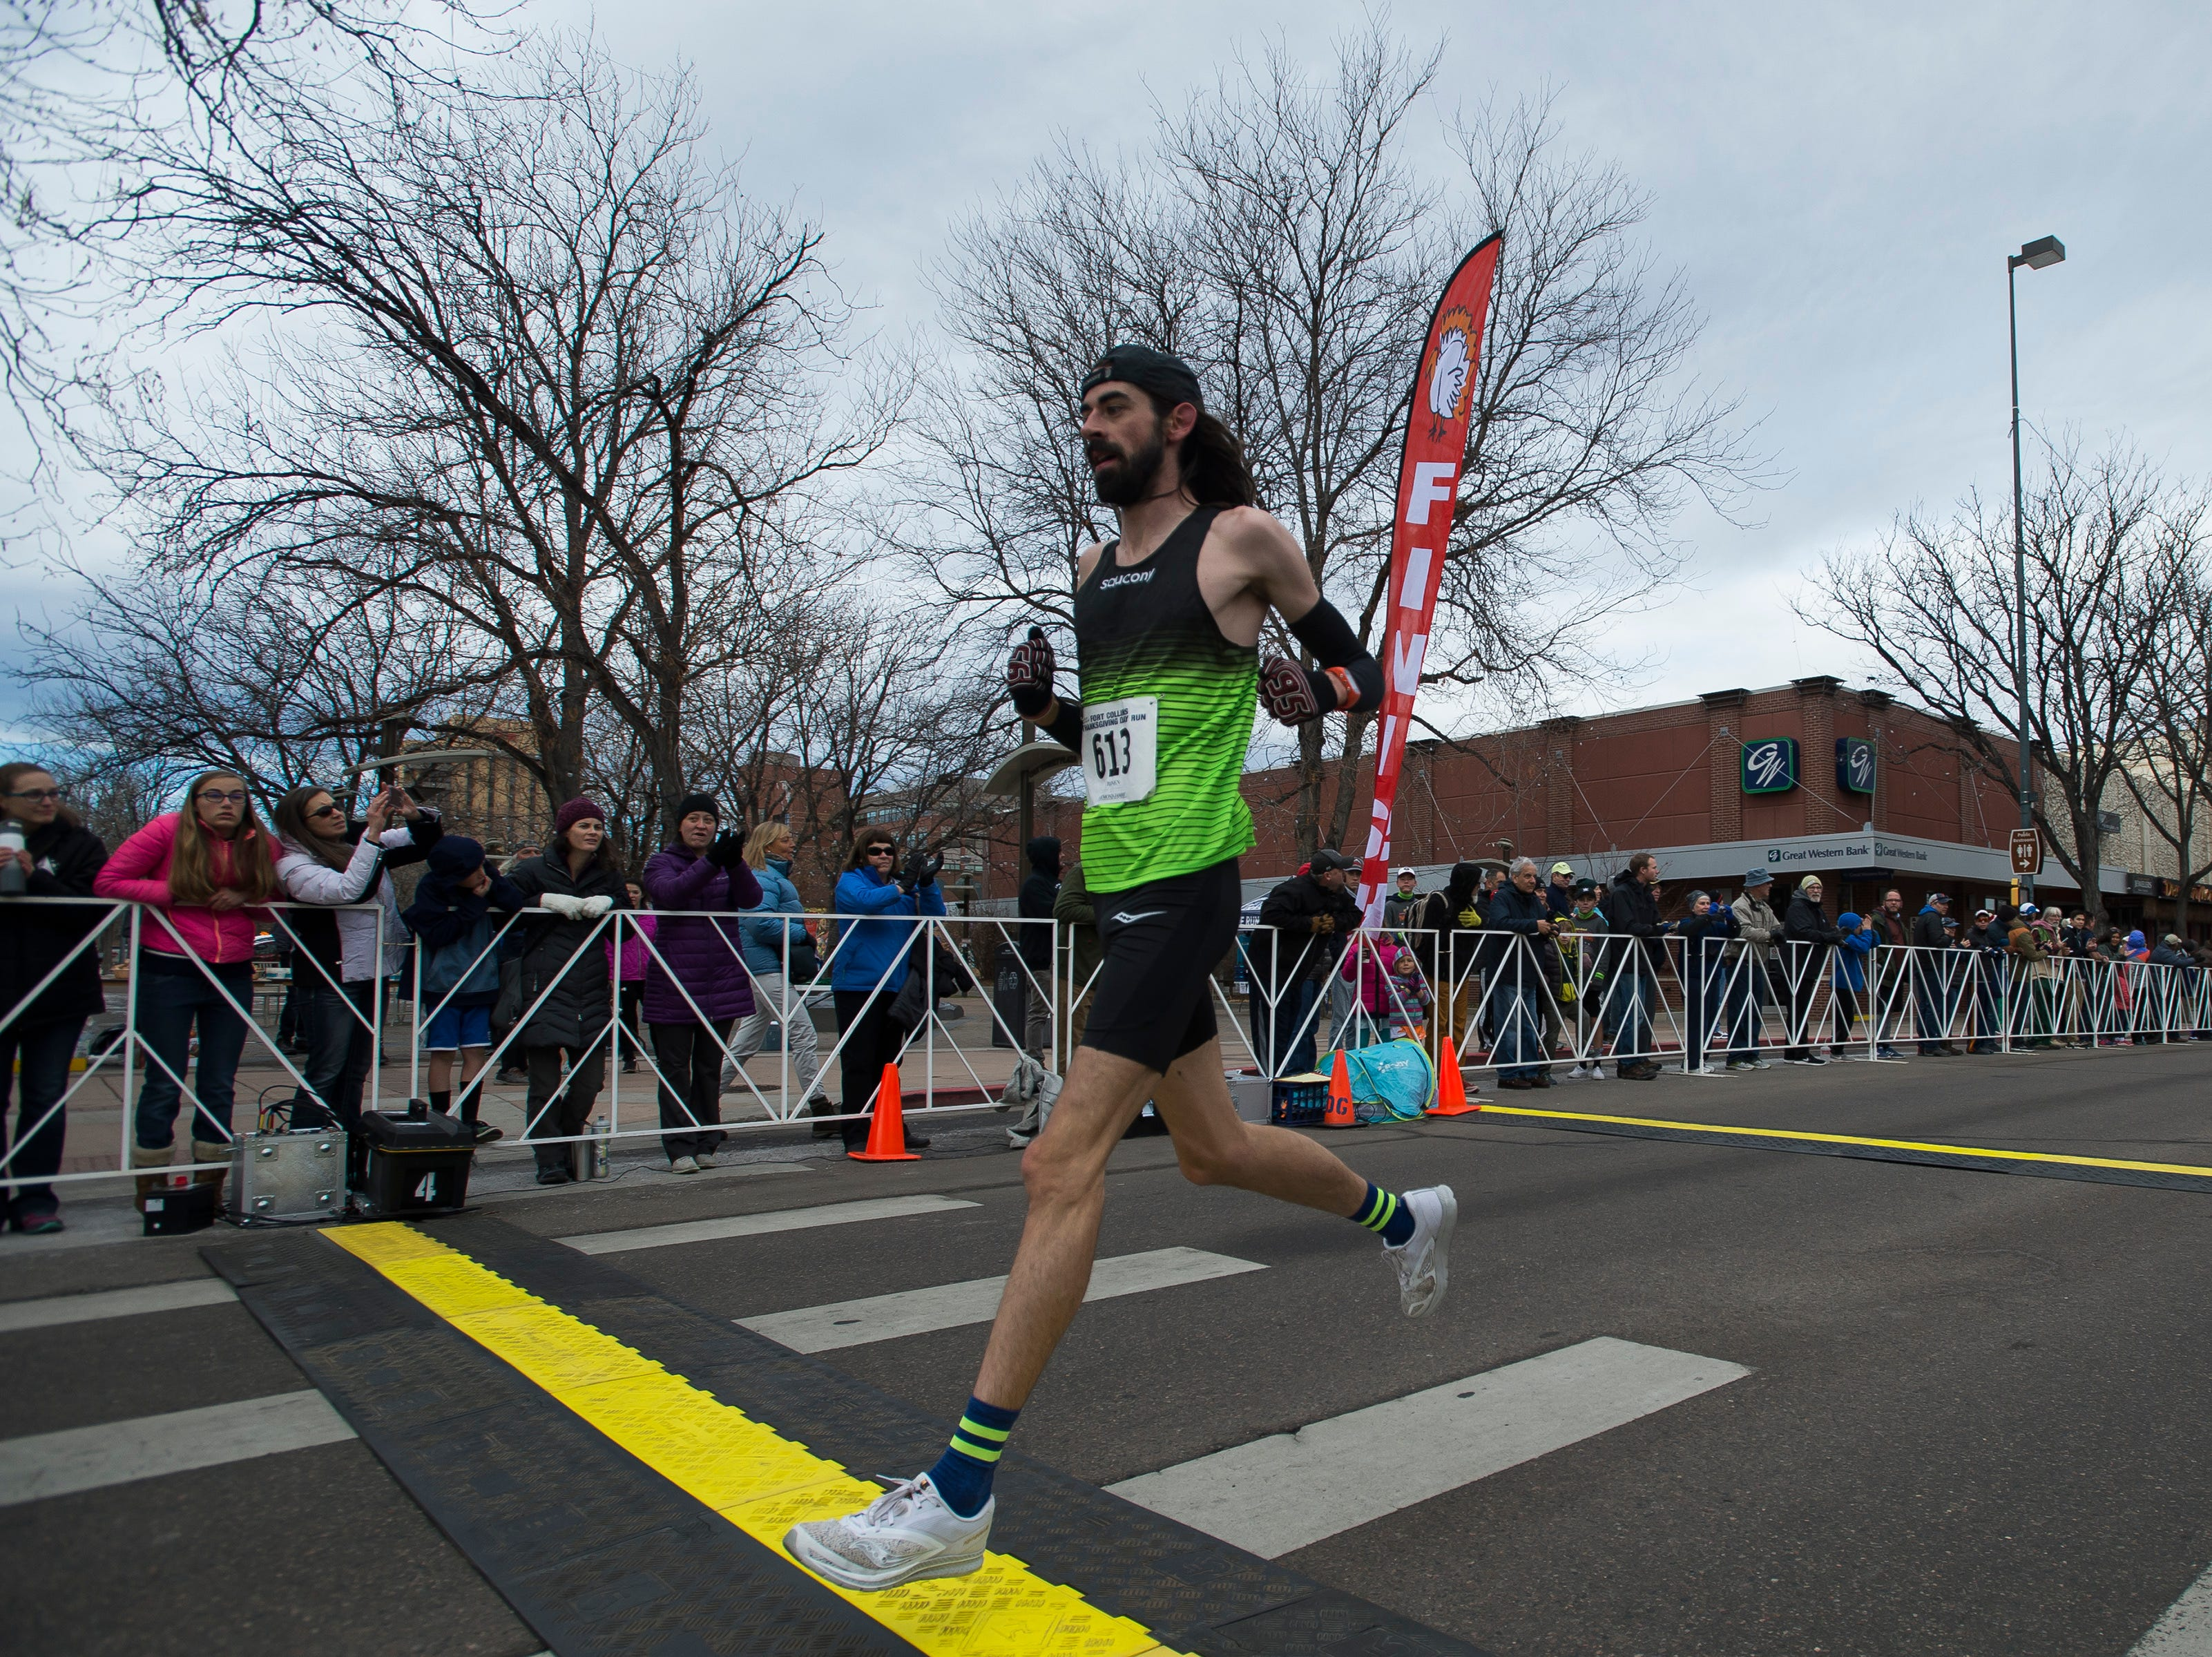 Noah Droddy crosses the finish line to become the first male finisher during the Fort Collins Thanksgiving Day Run on Thursday, Nov. 22, 2018, in Old Town Fort Collins, Colo.